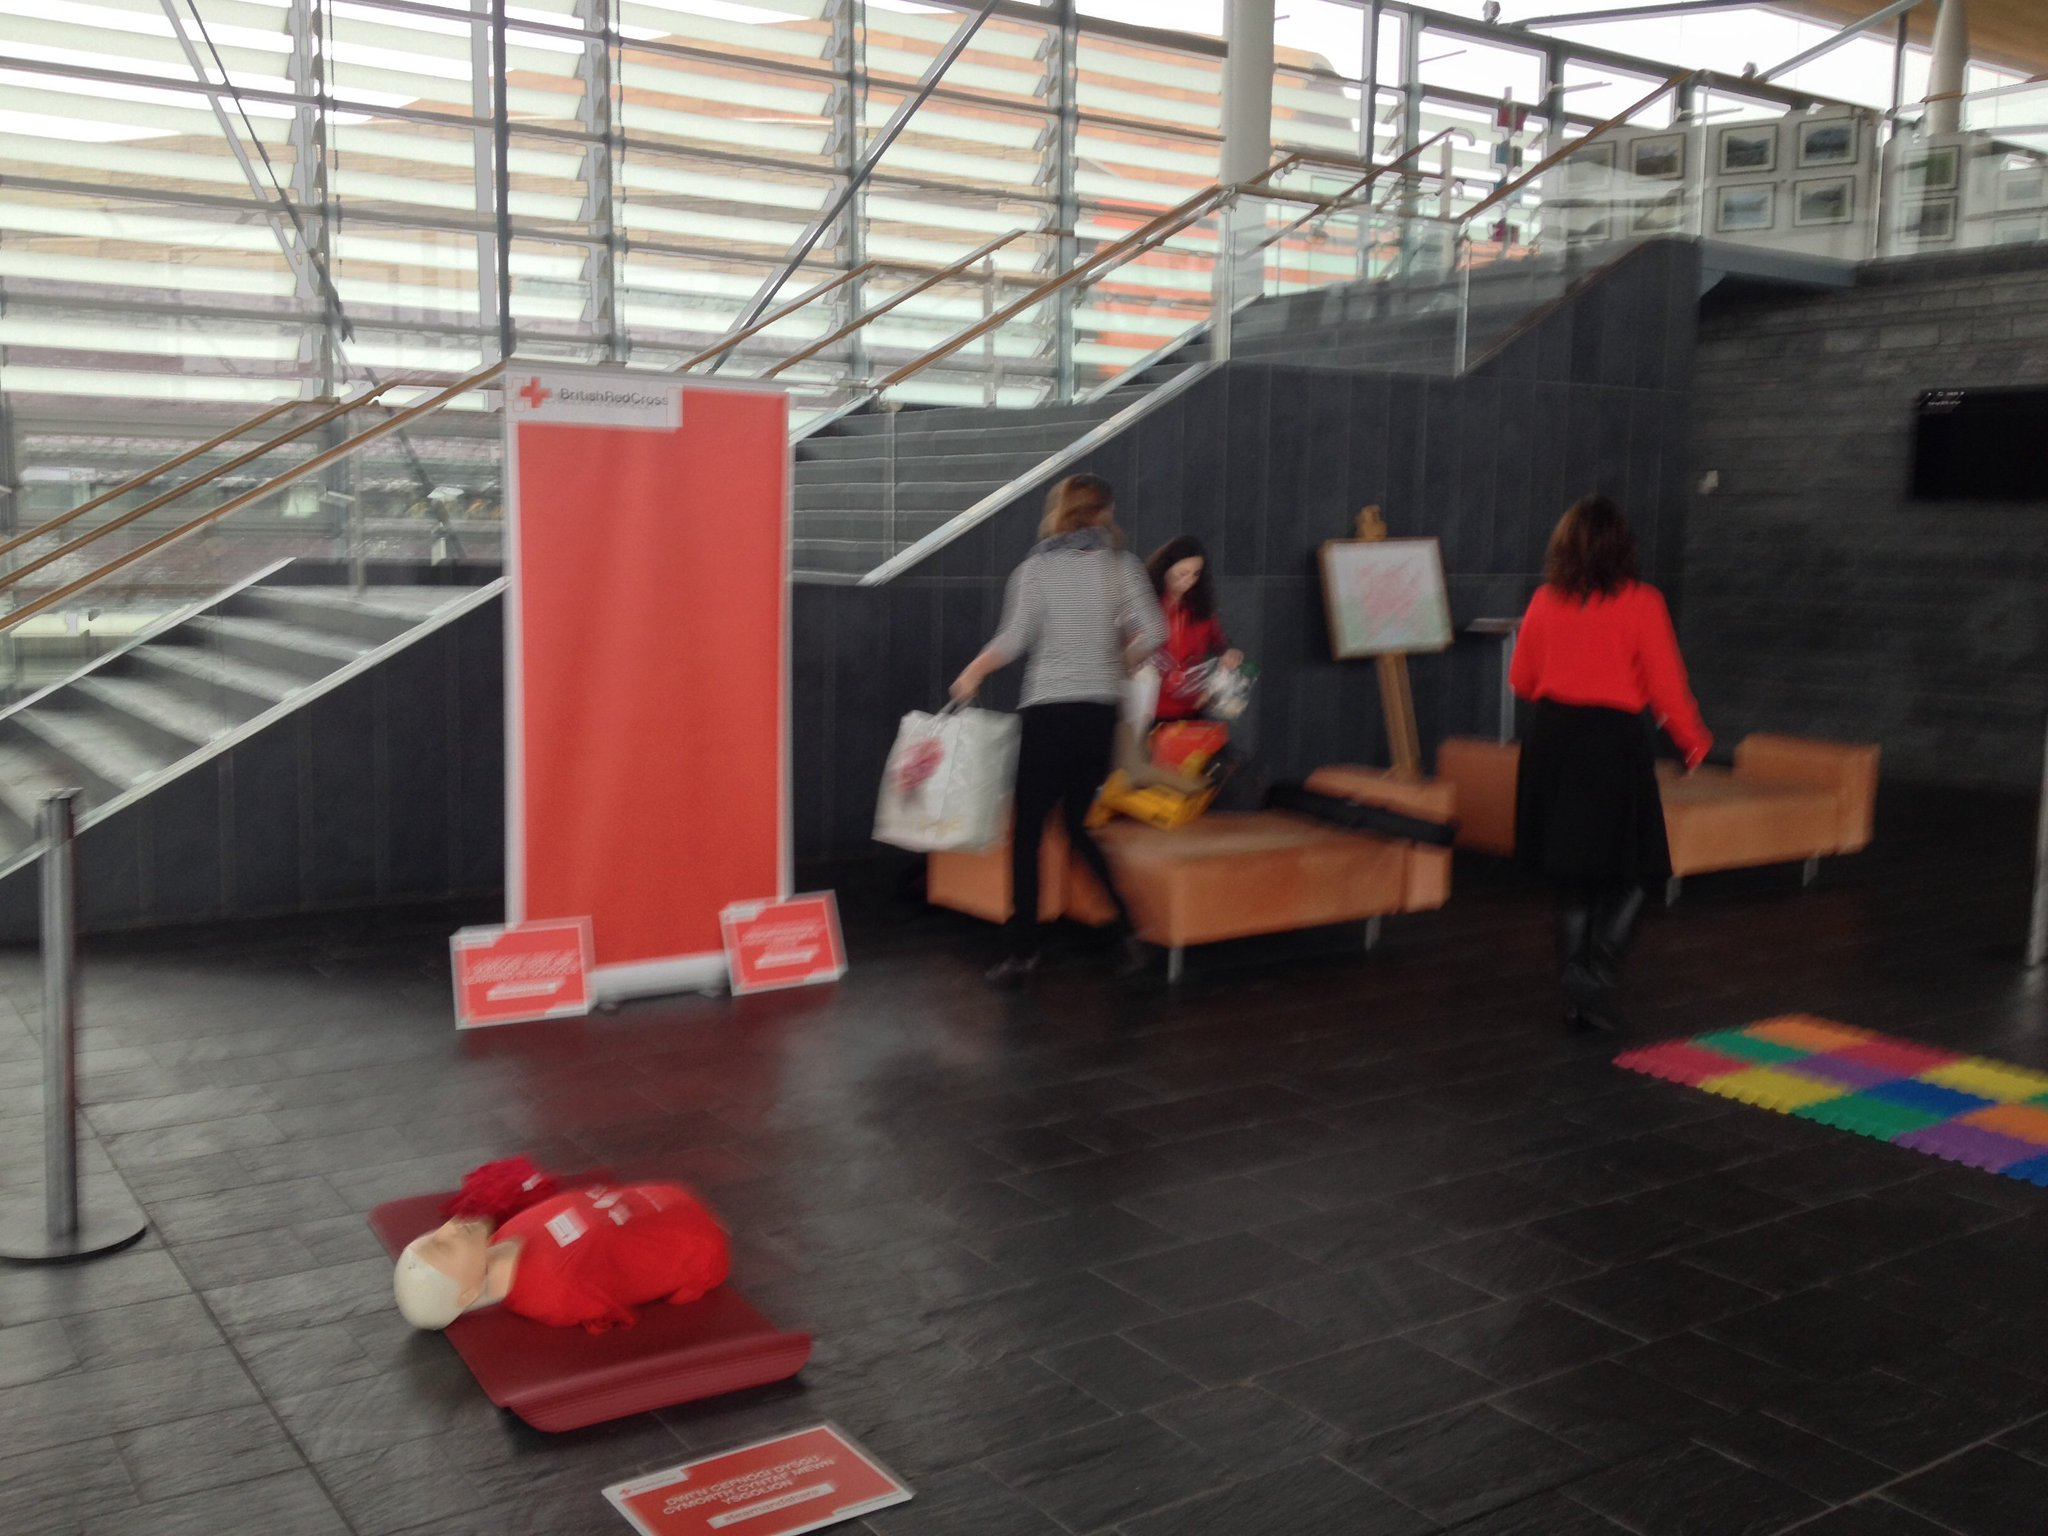 @BritishRedCross and @CardiffYC are setting up in the Senedd ahead of first aid session for AMs (10.30-11.30am). #learnandshare https://t.co/IvSCBwoH9w